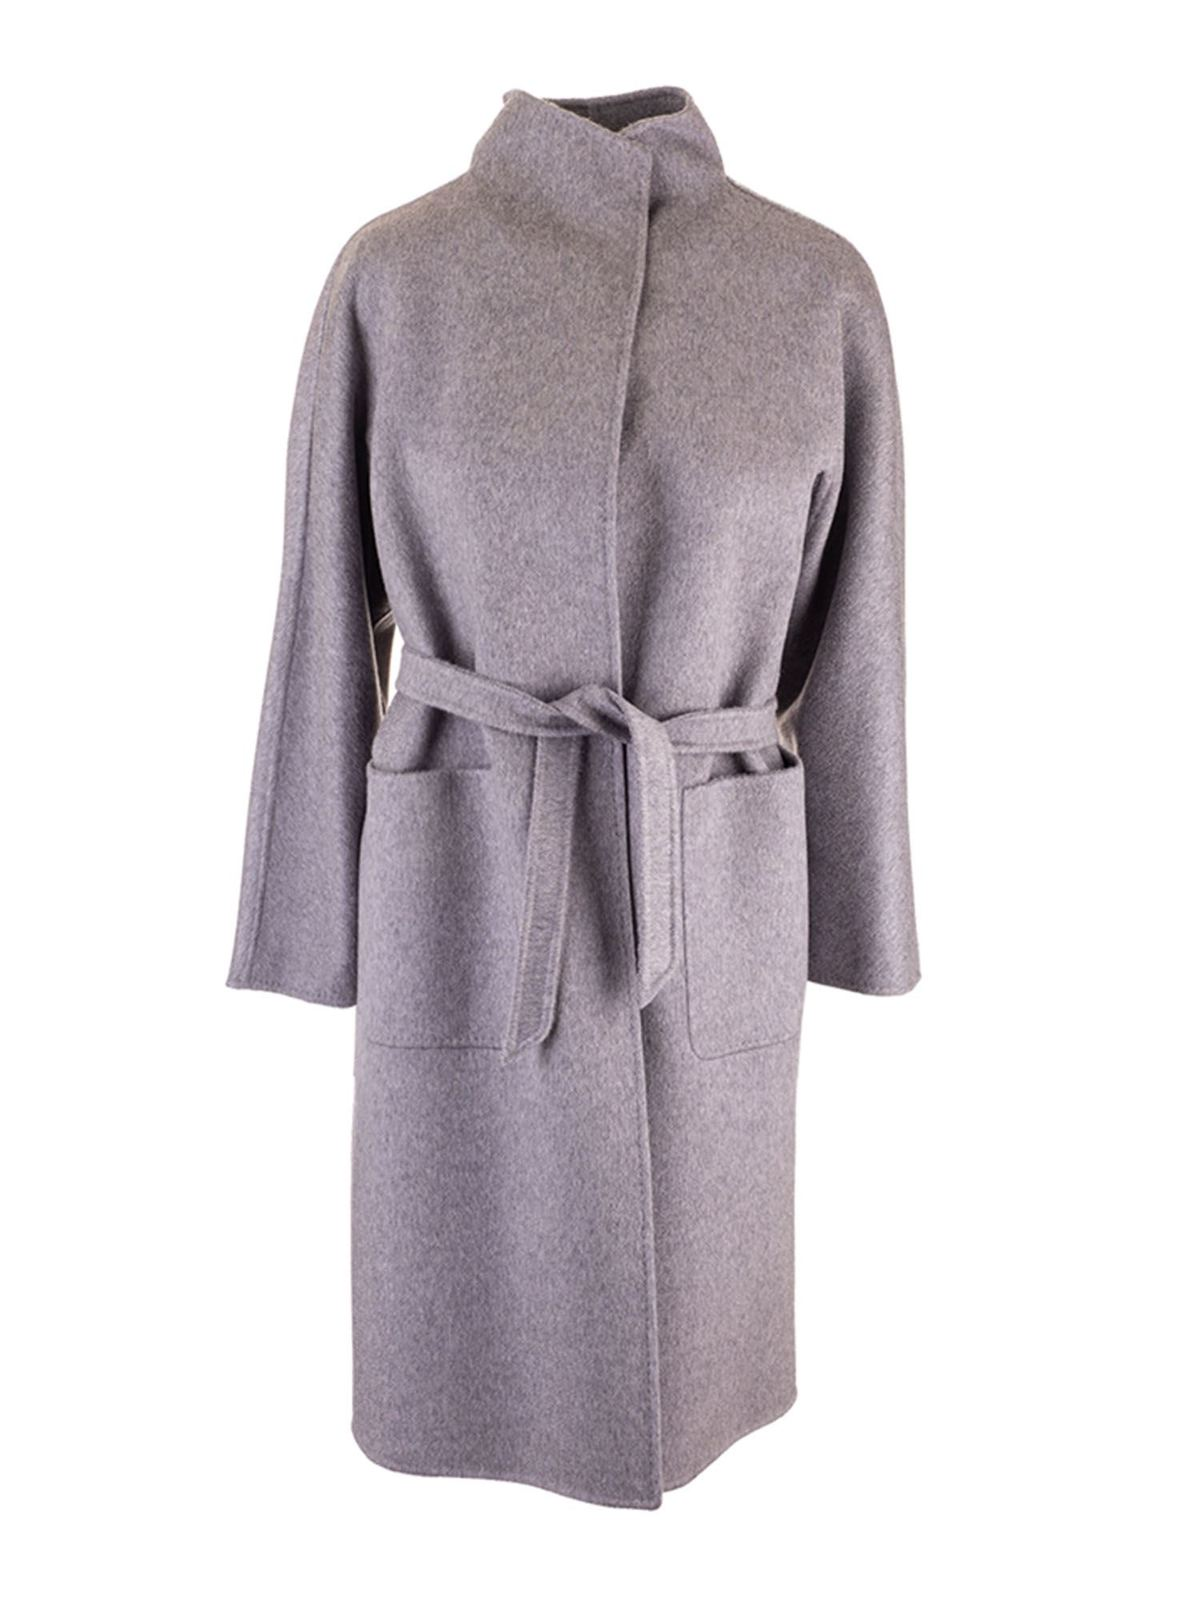 Max Mara Coats WRAPAROUND COAT IN GREY